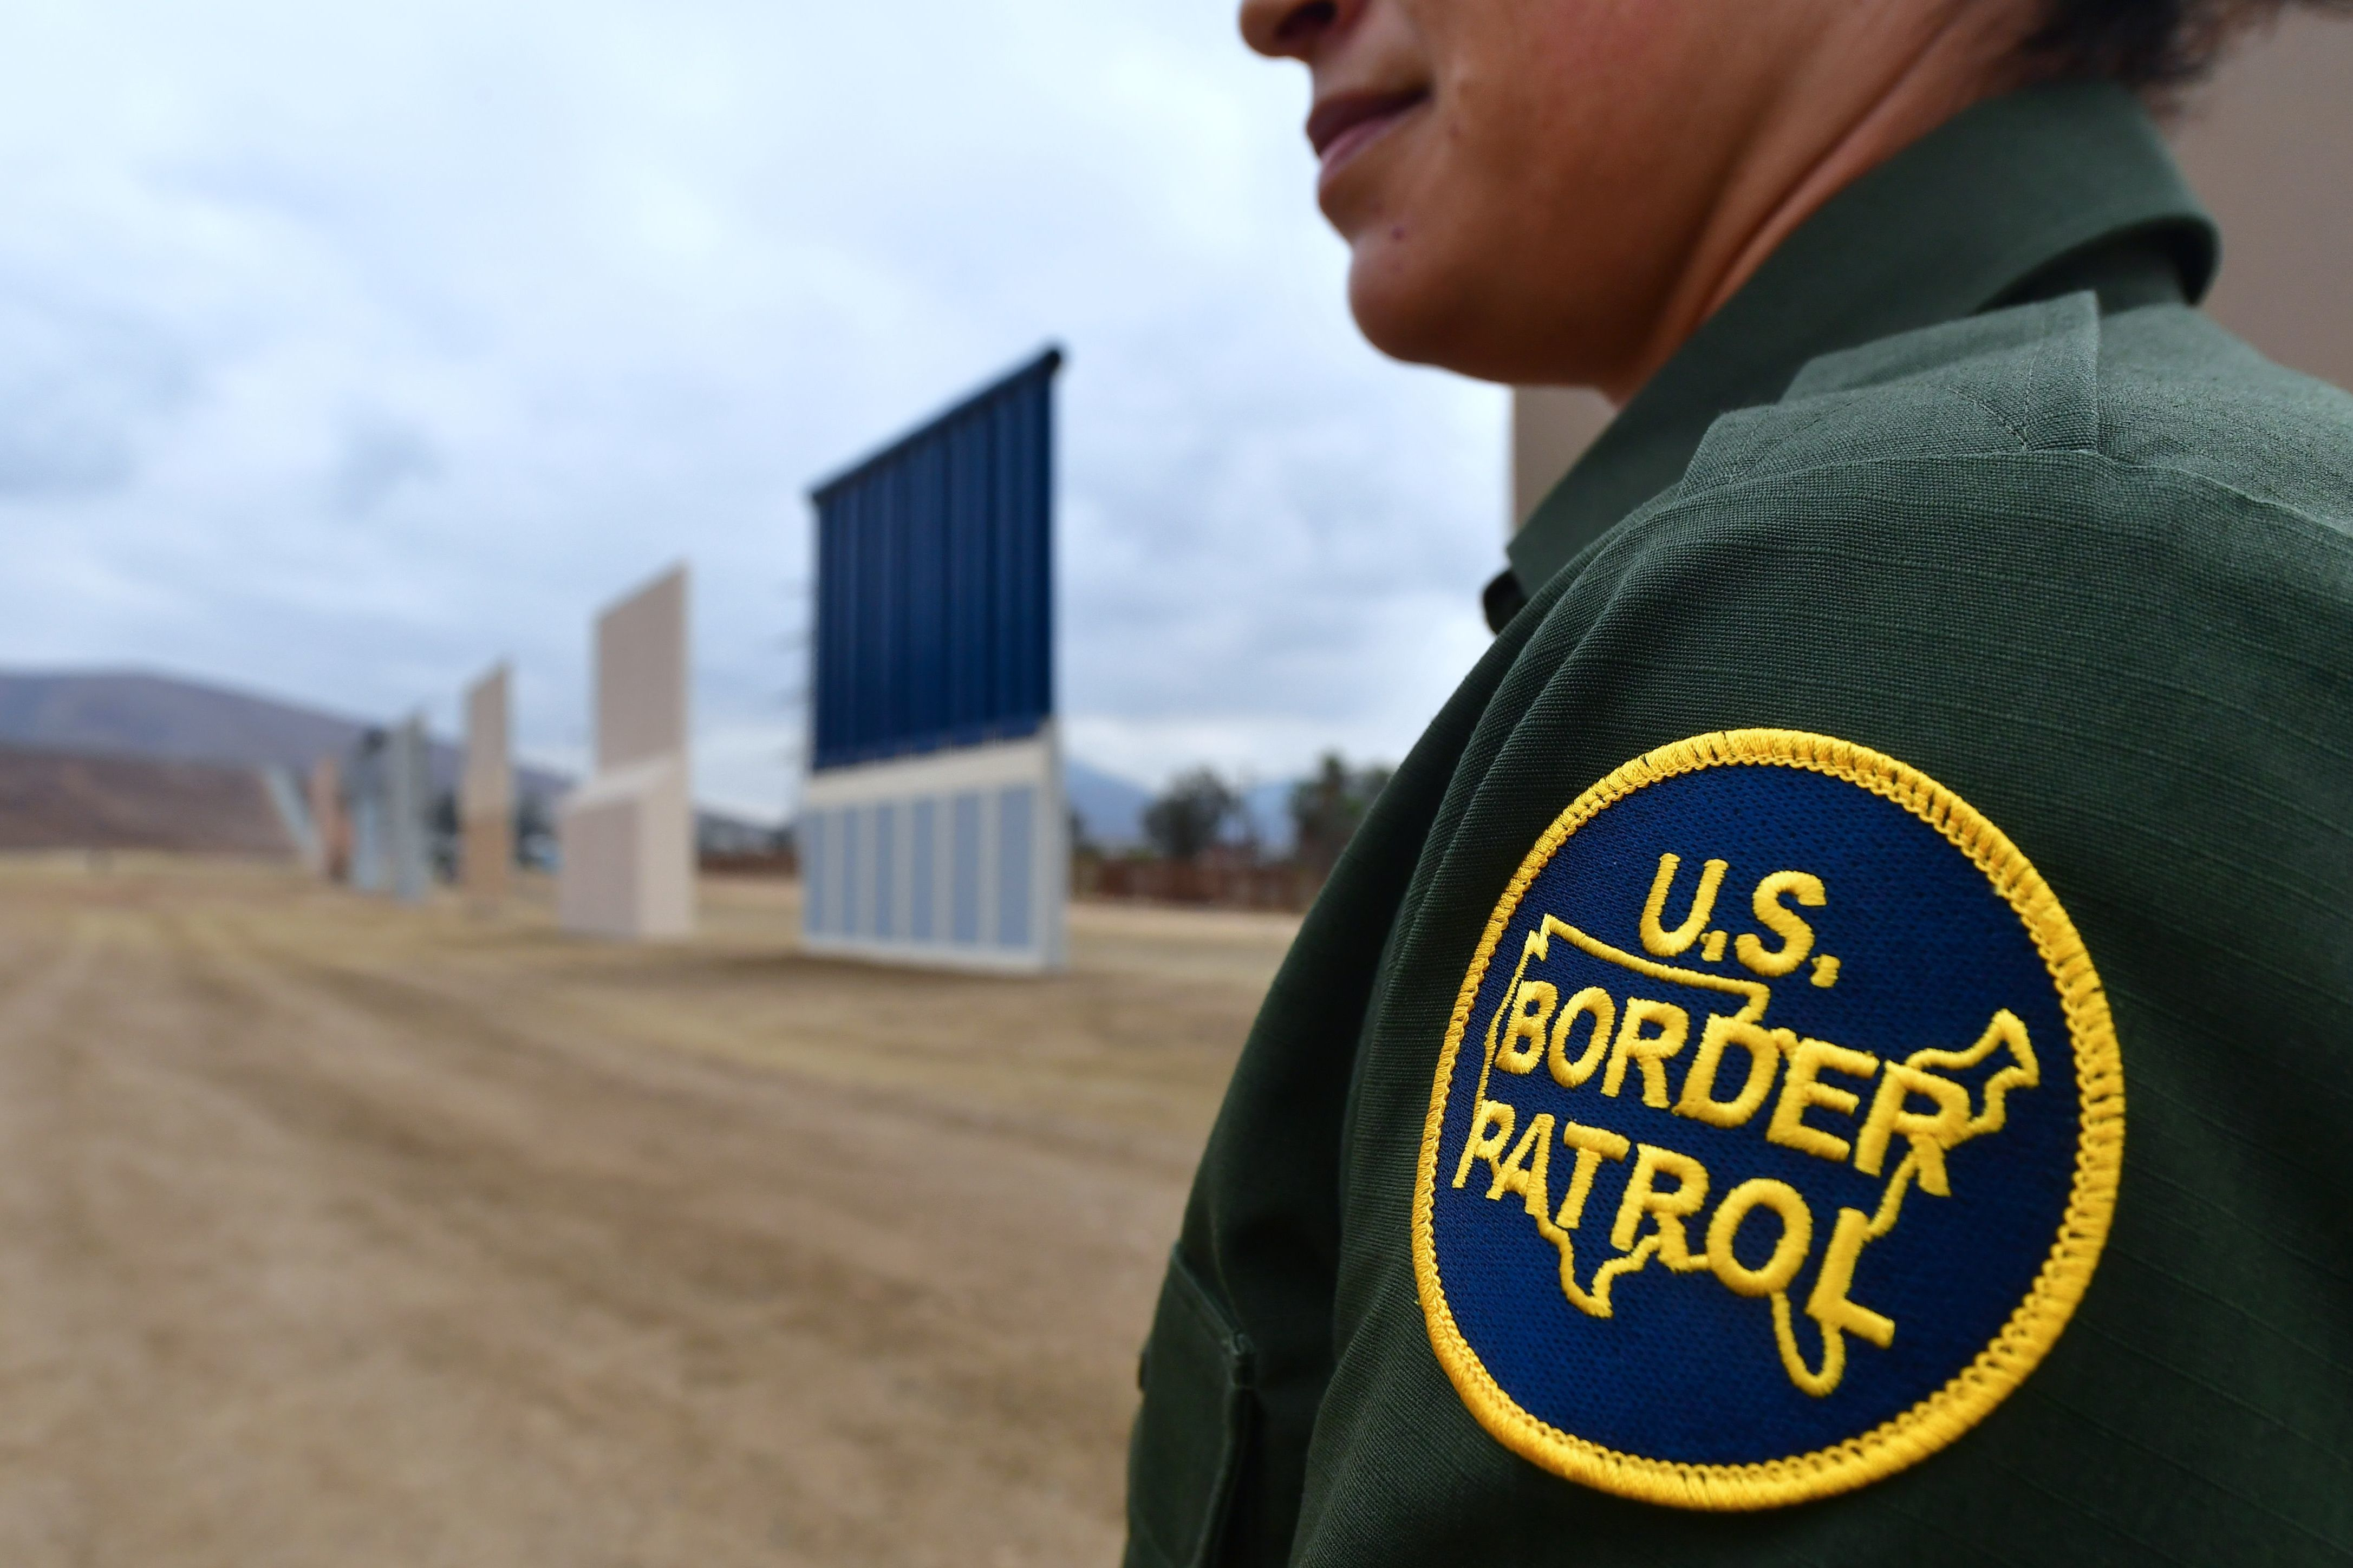 United States  border arrests at lowest since 1971 - Trump administration